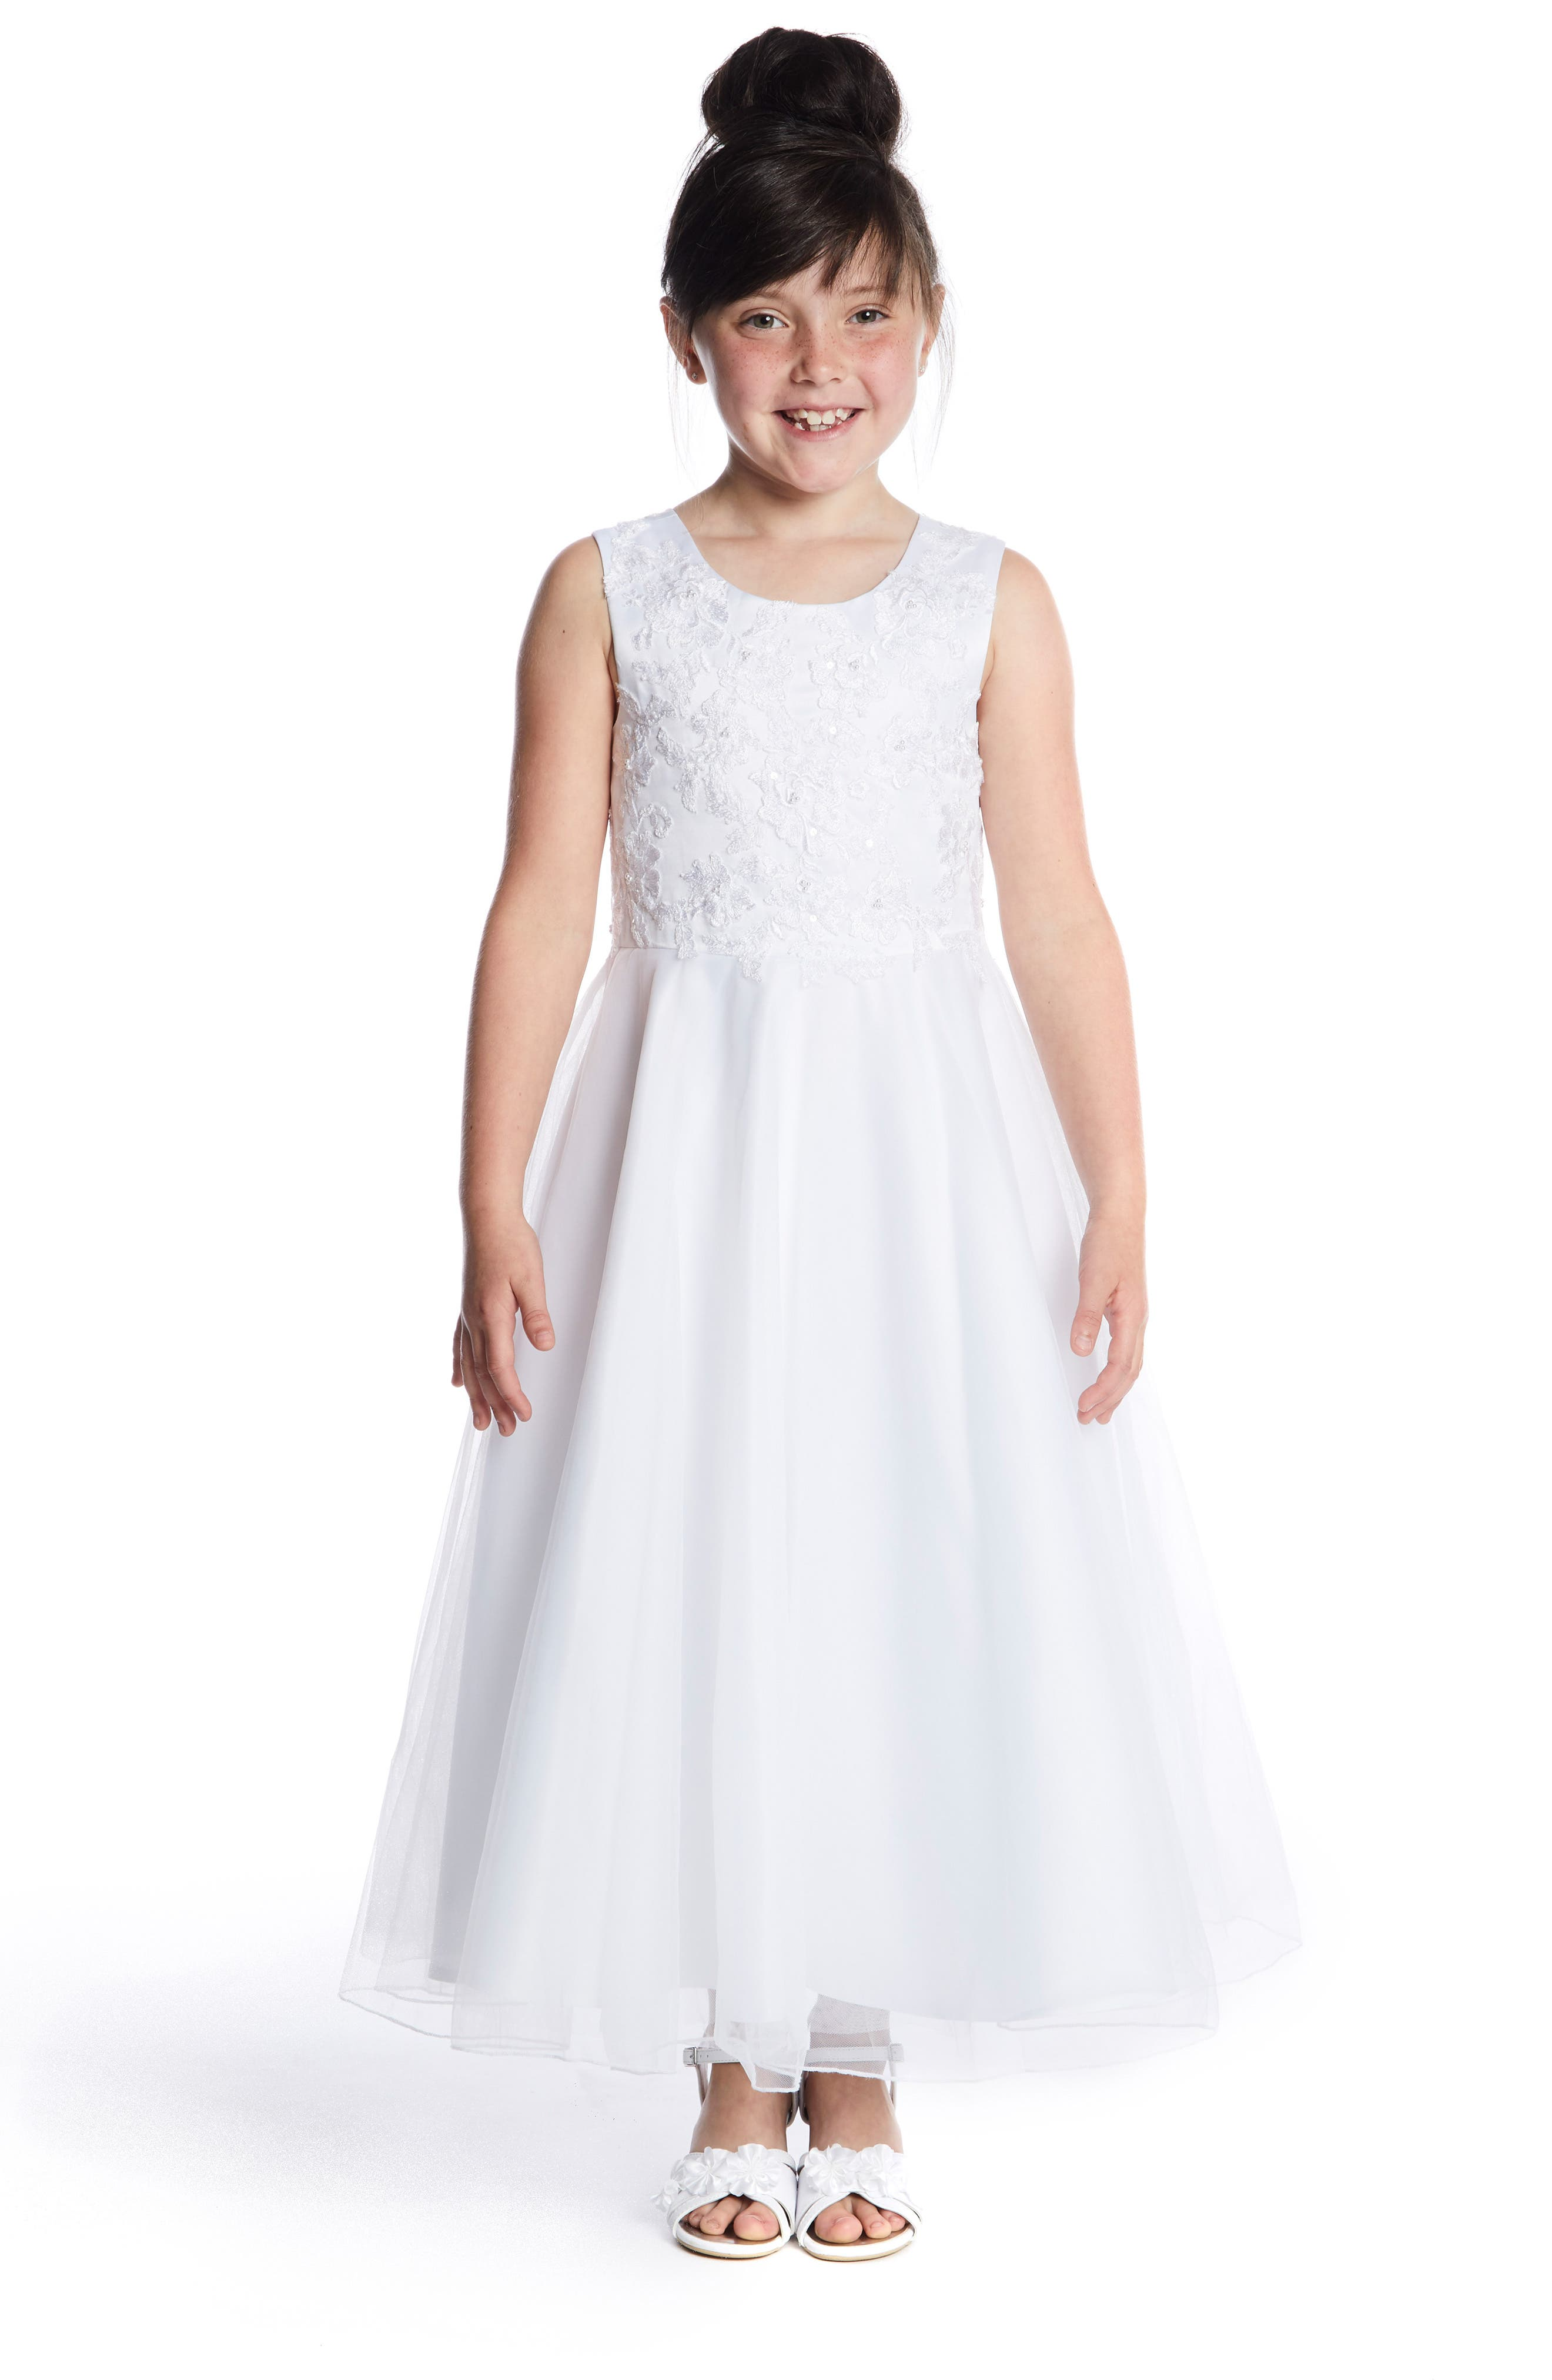 LAUREN MARIE, Embroidered Bodice Tulle Dress, Alternate thumbnail 2, color, WHITE